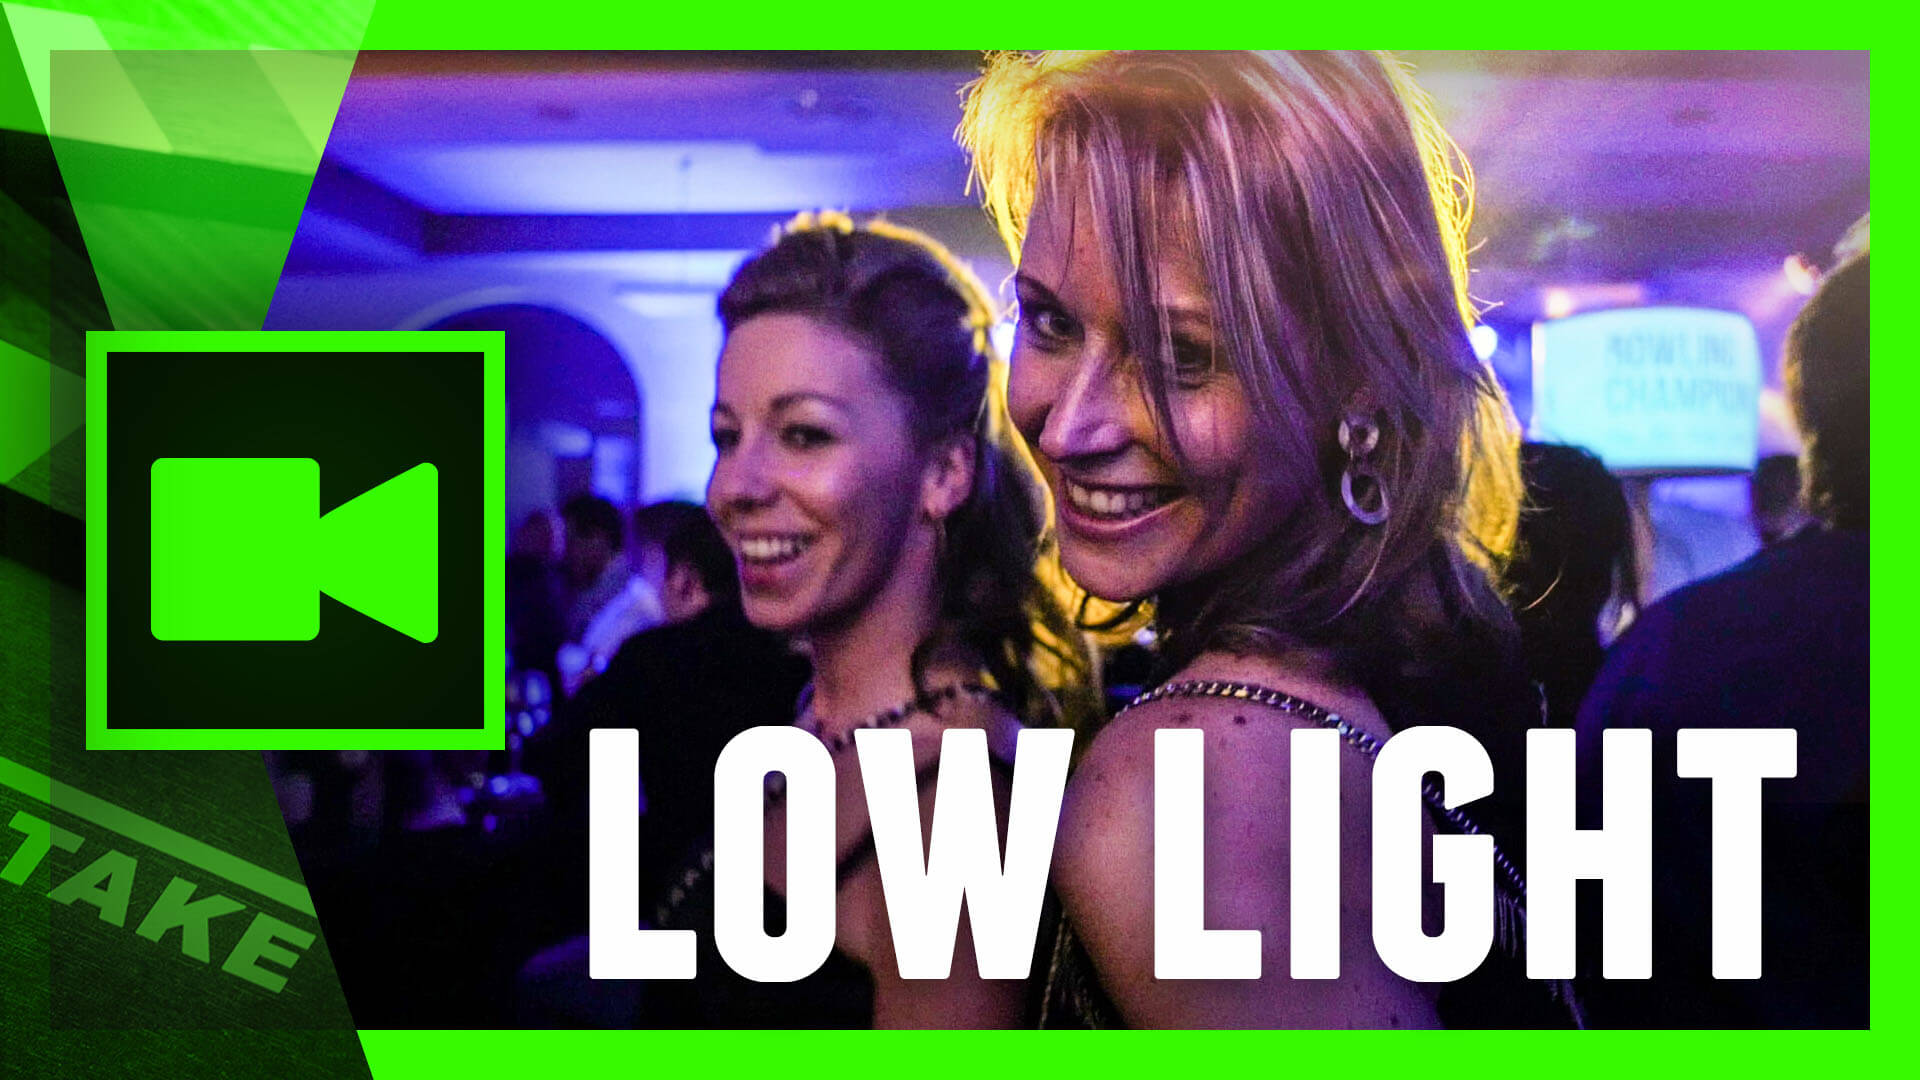 sc 1 st  Cinecom.net & Advanced tips for filming in low light: 5 simple solutions | Cinecom.net